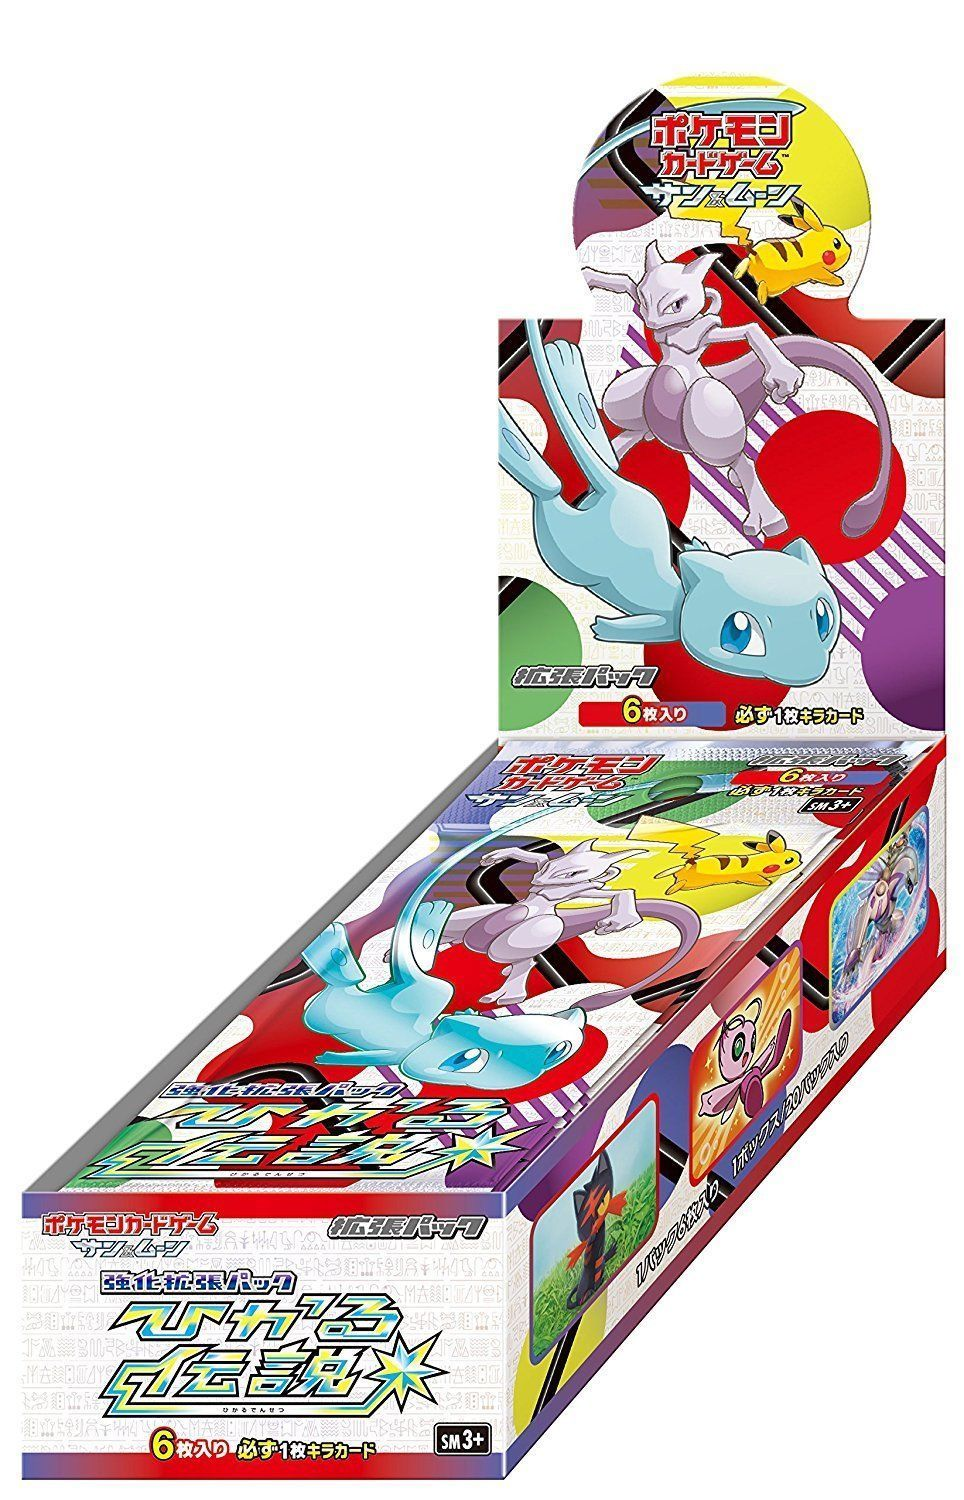 Japanese Pokemon Shining Legends SM3+ Booster Box Sun & Moon